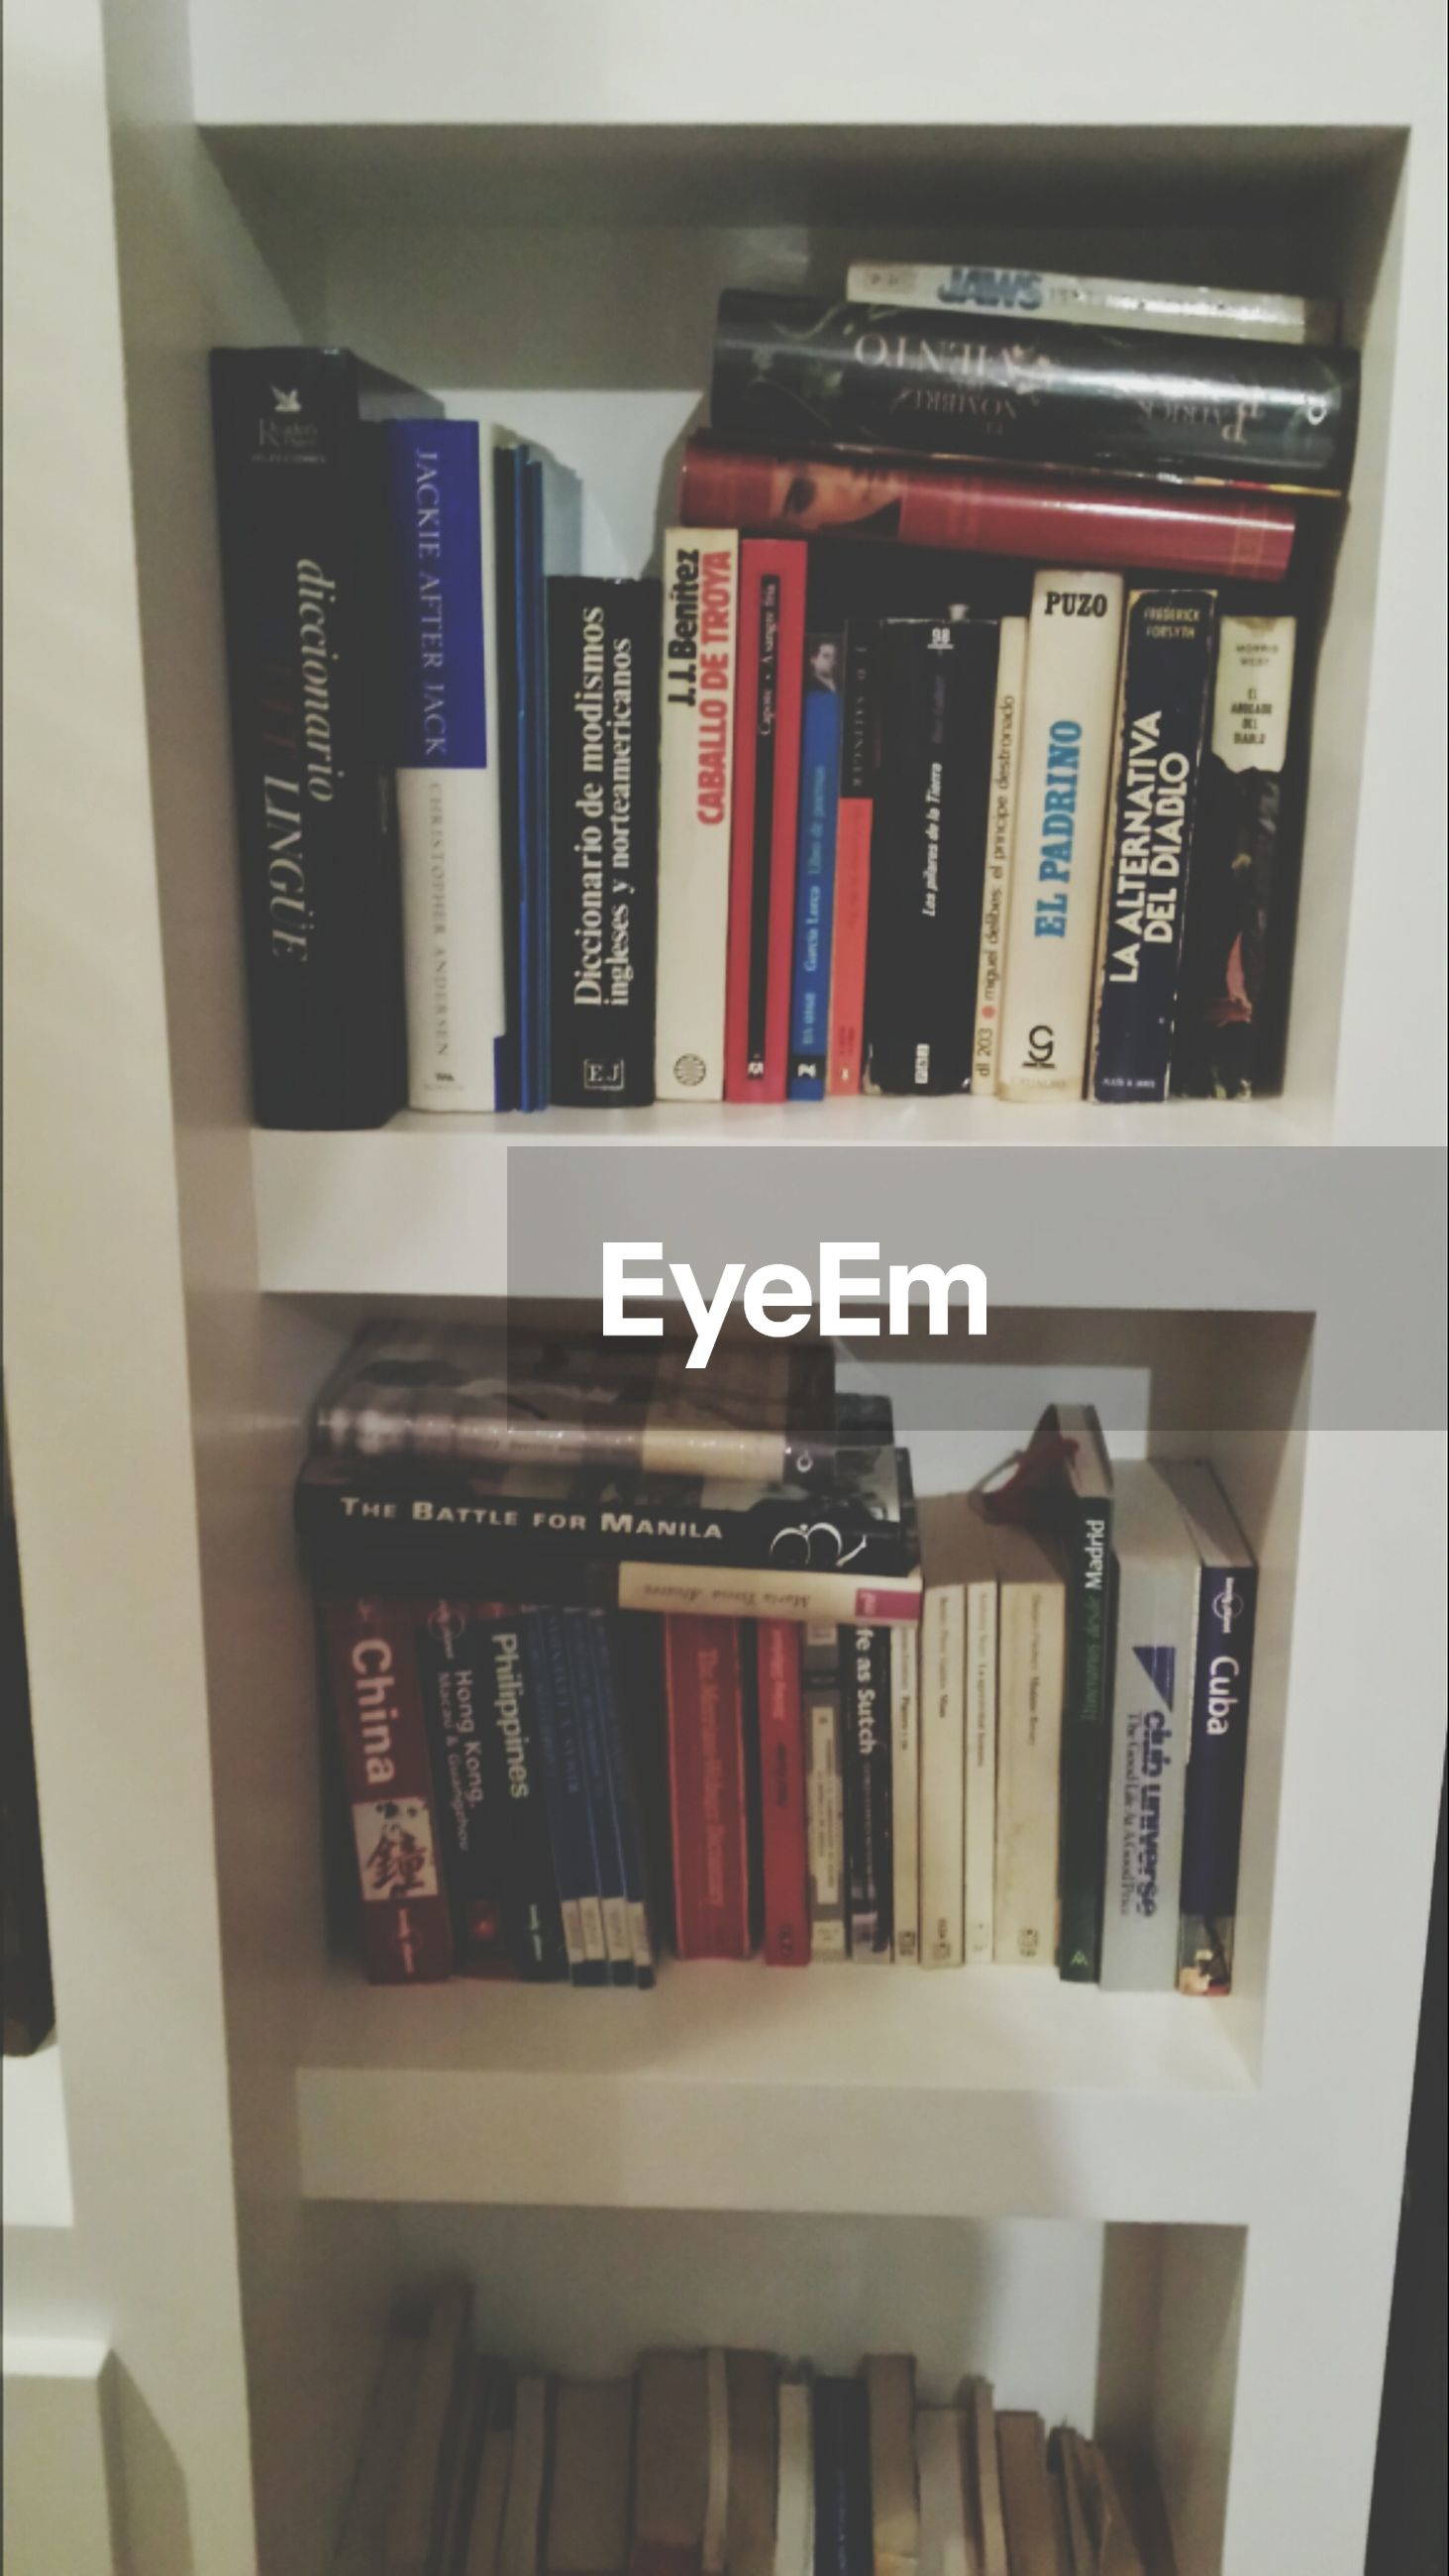 indoors, shelf, book, variation, education, large group of objects, arrangement, still life, desk, choice, table, bookshelf, no people, communication, order, in a row, literature, home interior, text, technology